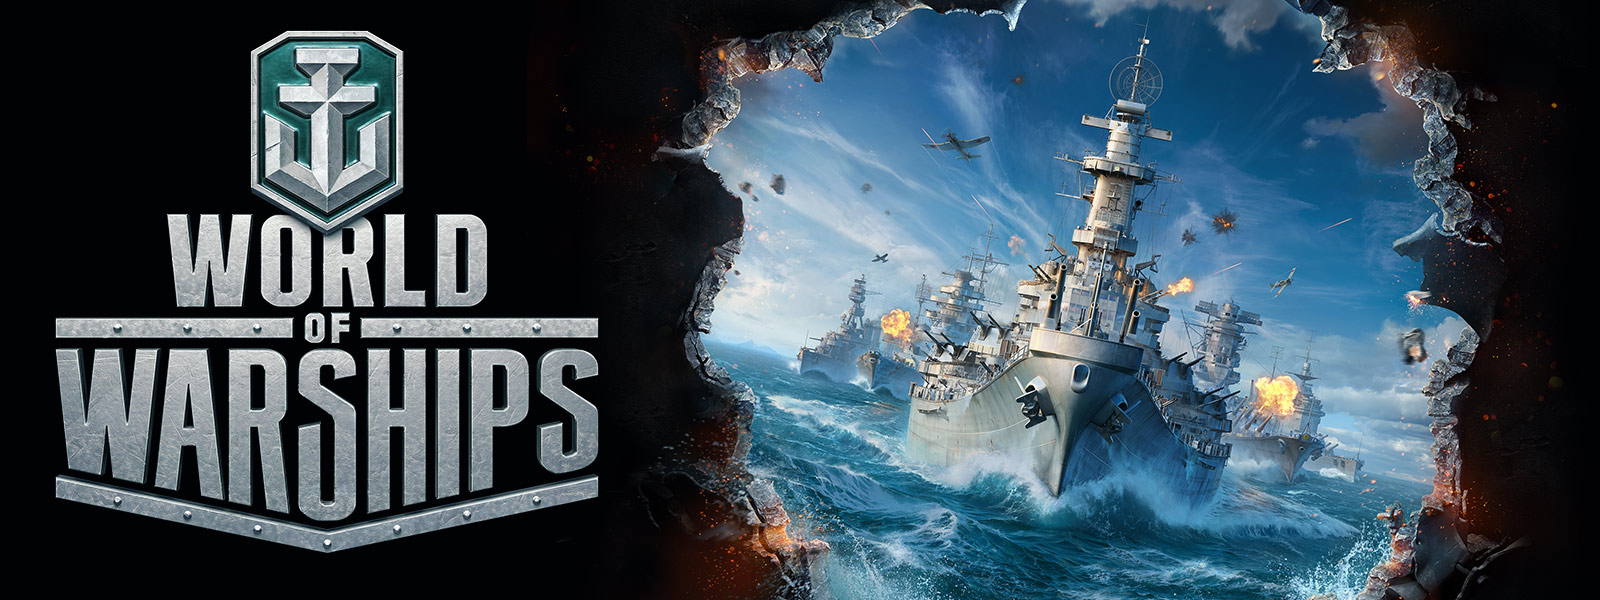 Map World Of Tanks Pc To Controller%0A World of Warships